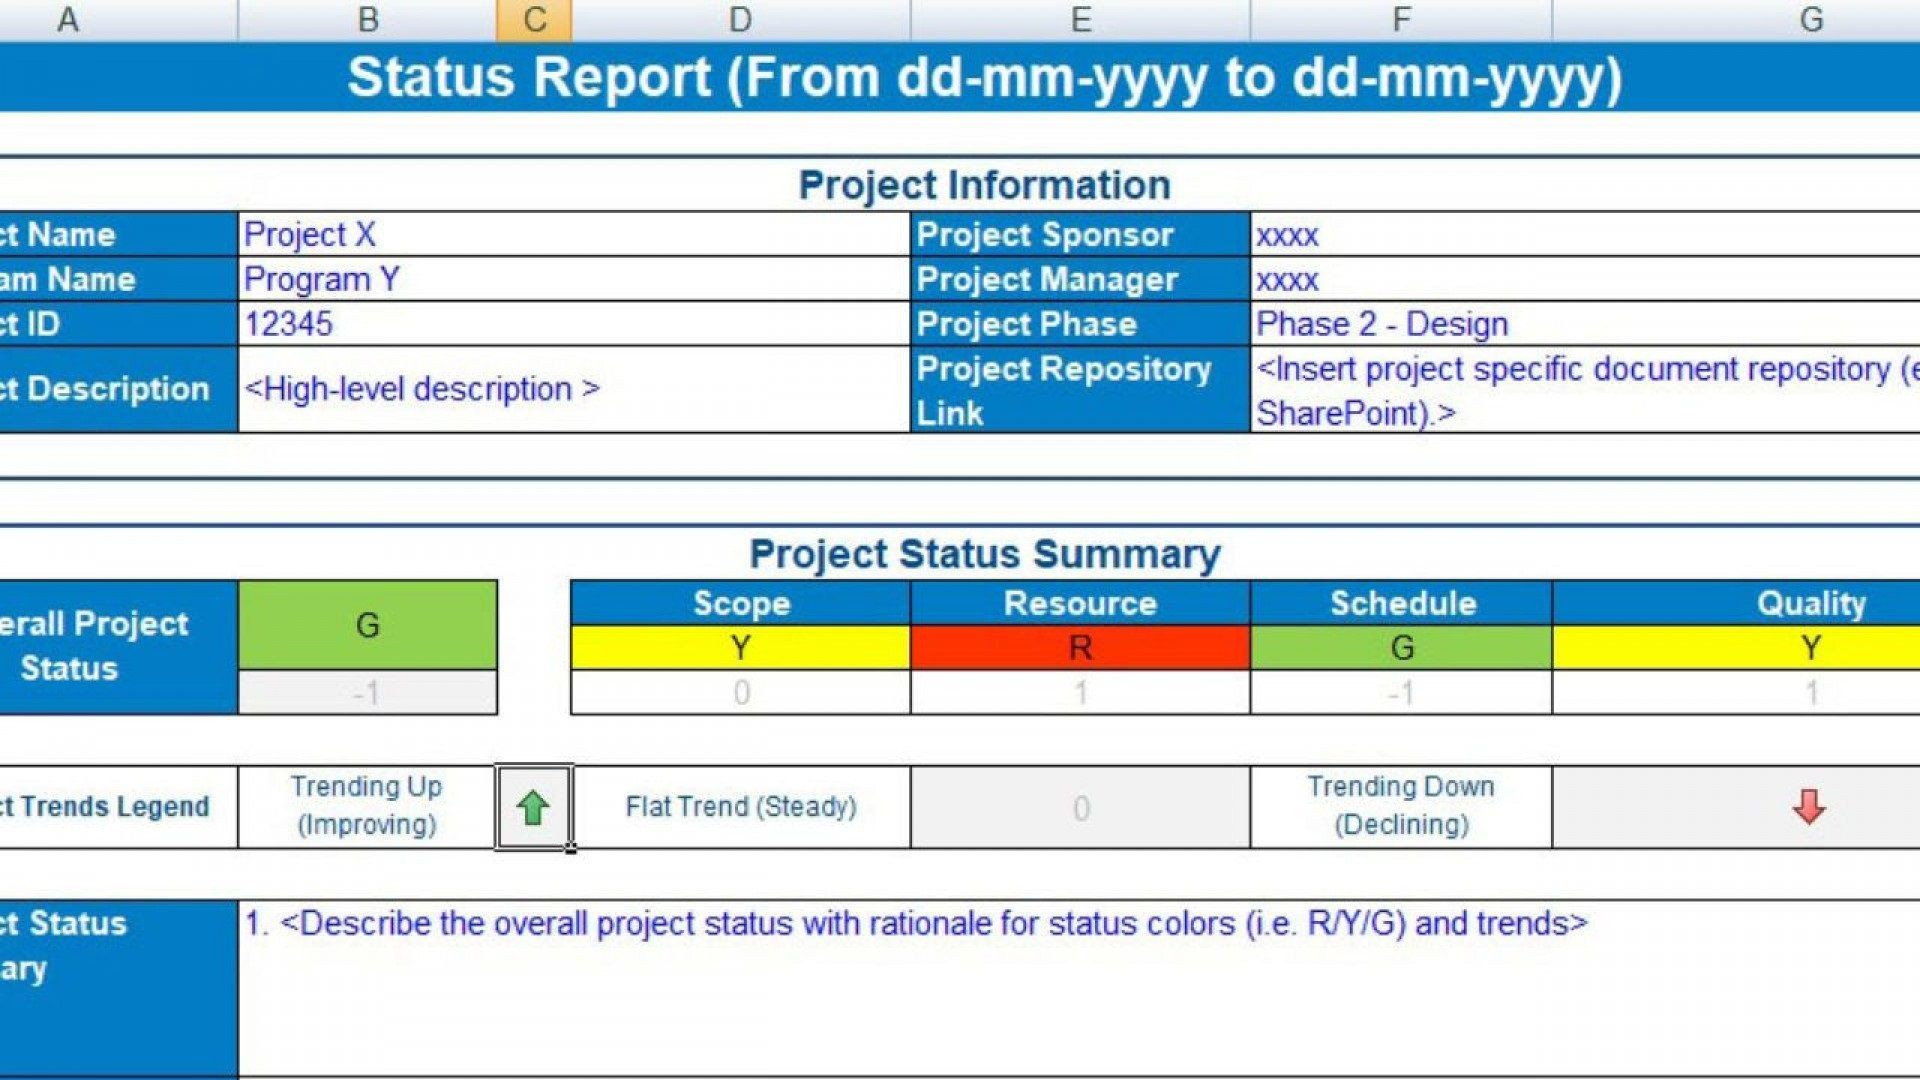 009 Exceptional Project Management Weekly Statu Report Template Ppt Picture  Template+powerpoint1920